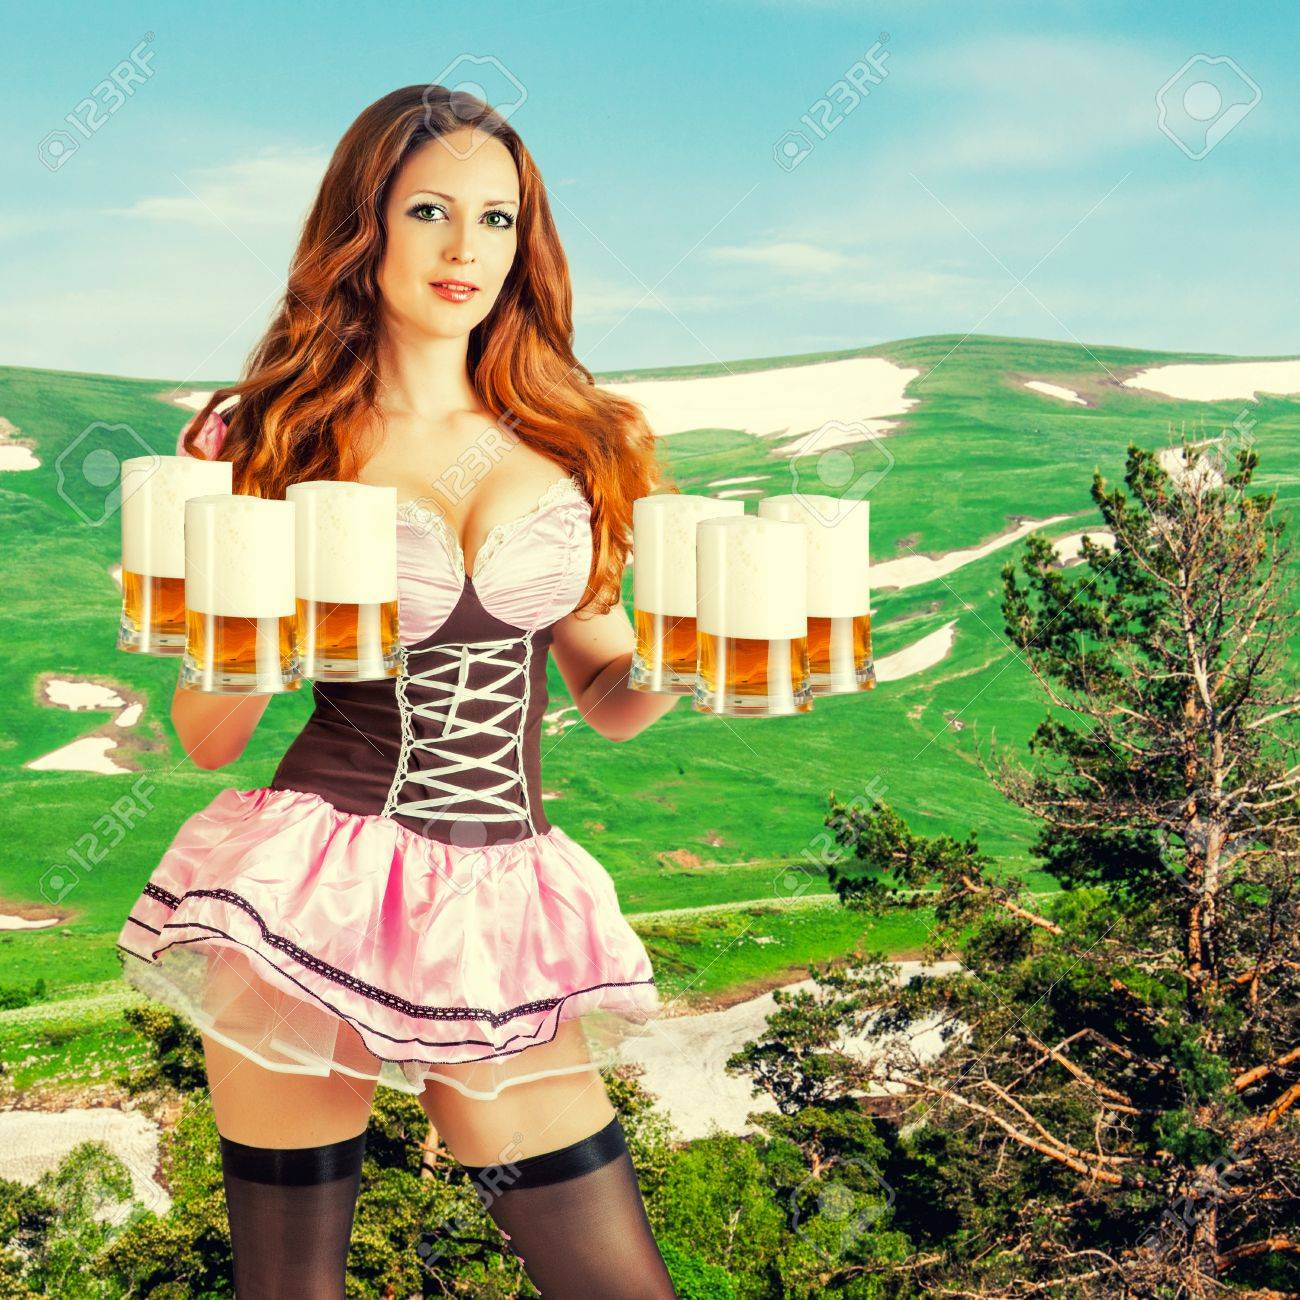 Sexy girl with beer